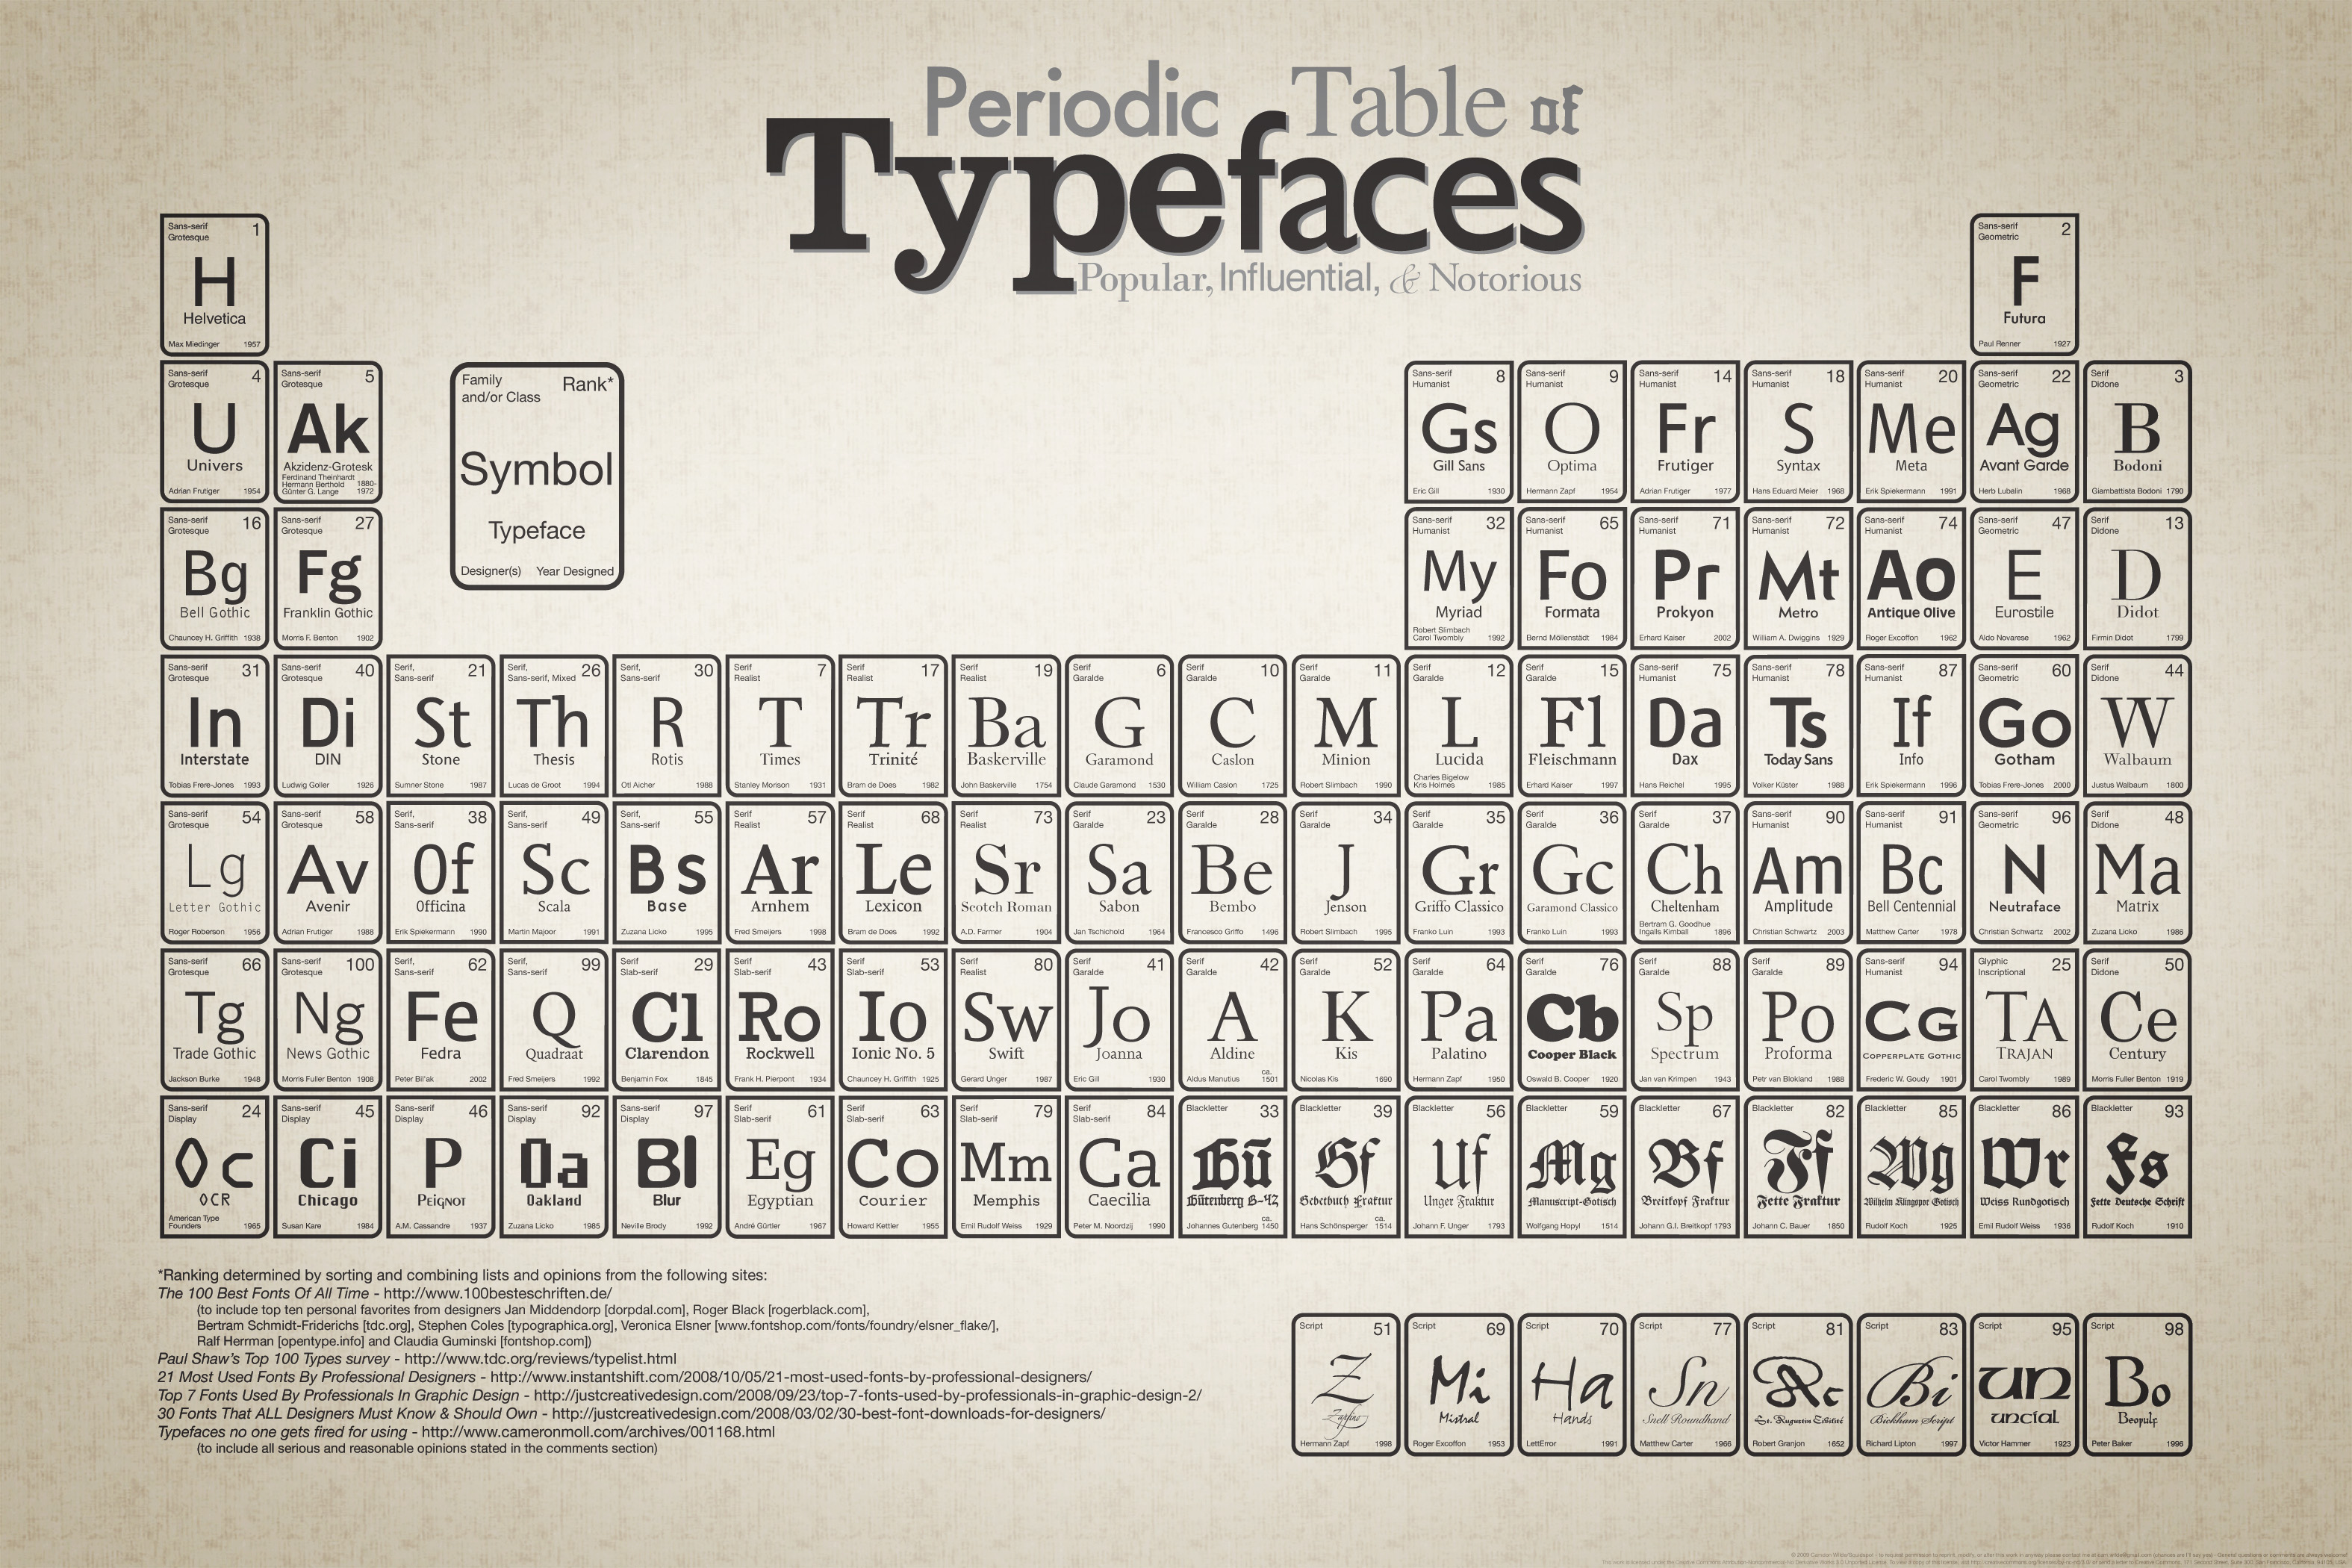 https://i2.wp.com/www.squidspot.com/Periodic_Table_of_Typefaces/Periodic_Table_of_Typefaces_large.jpg